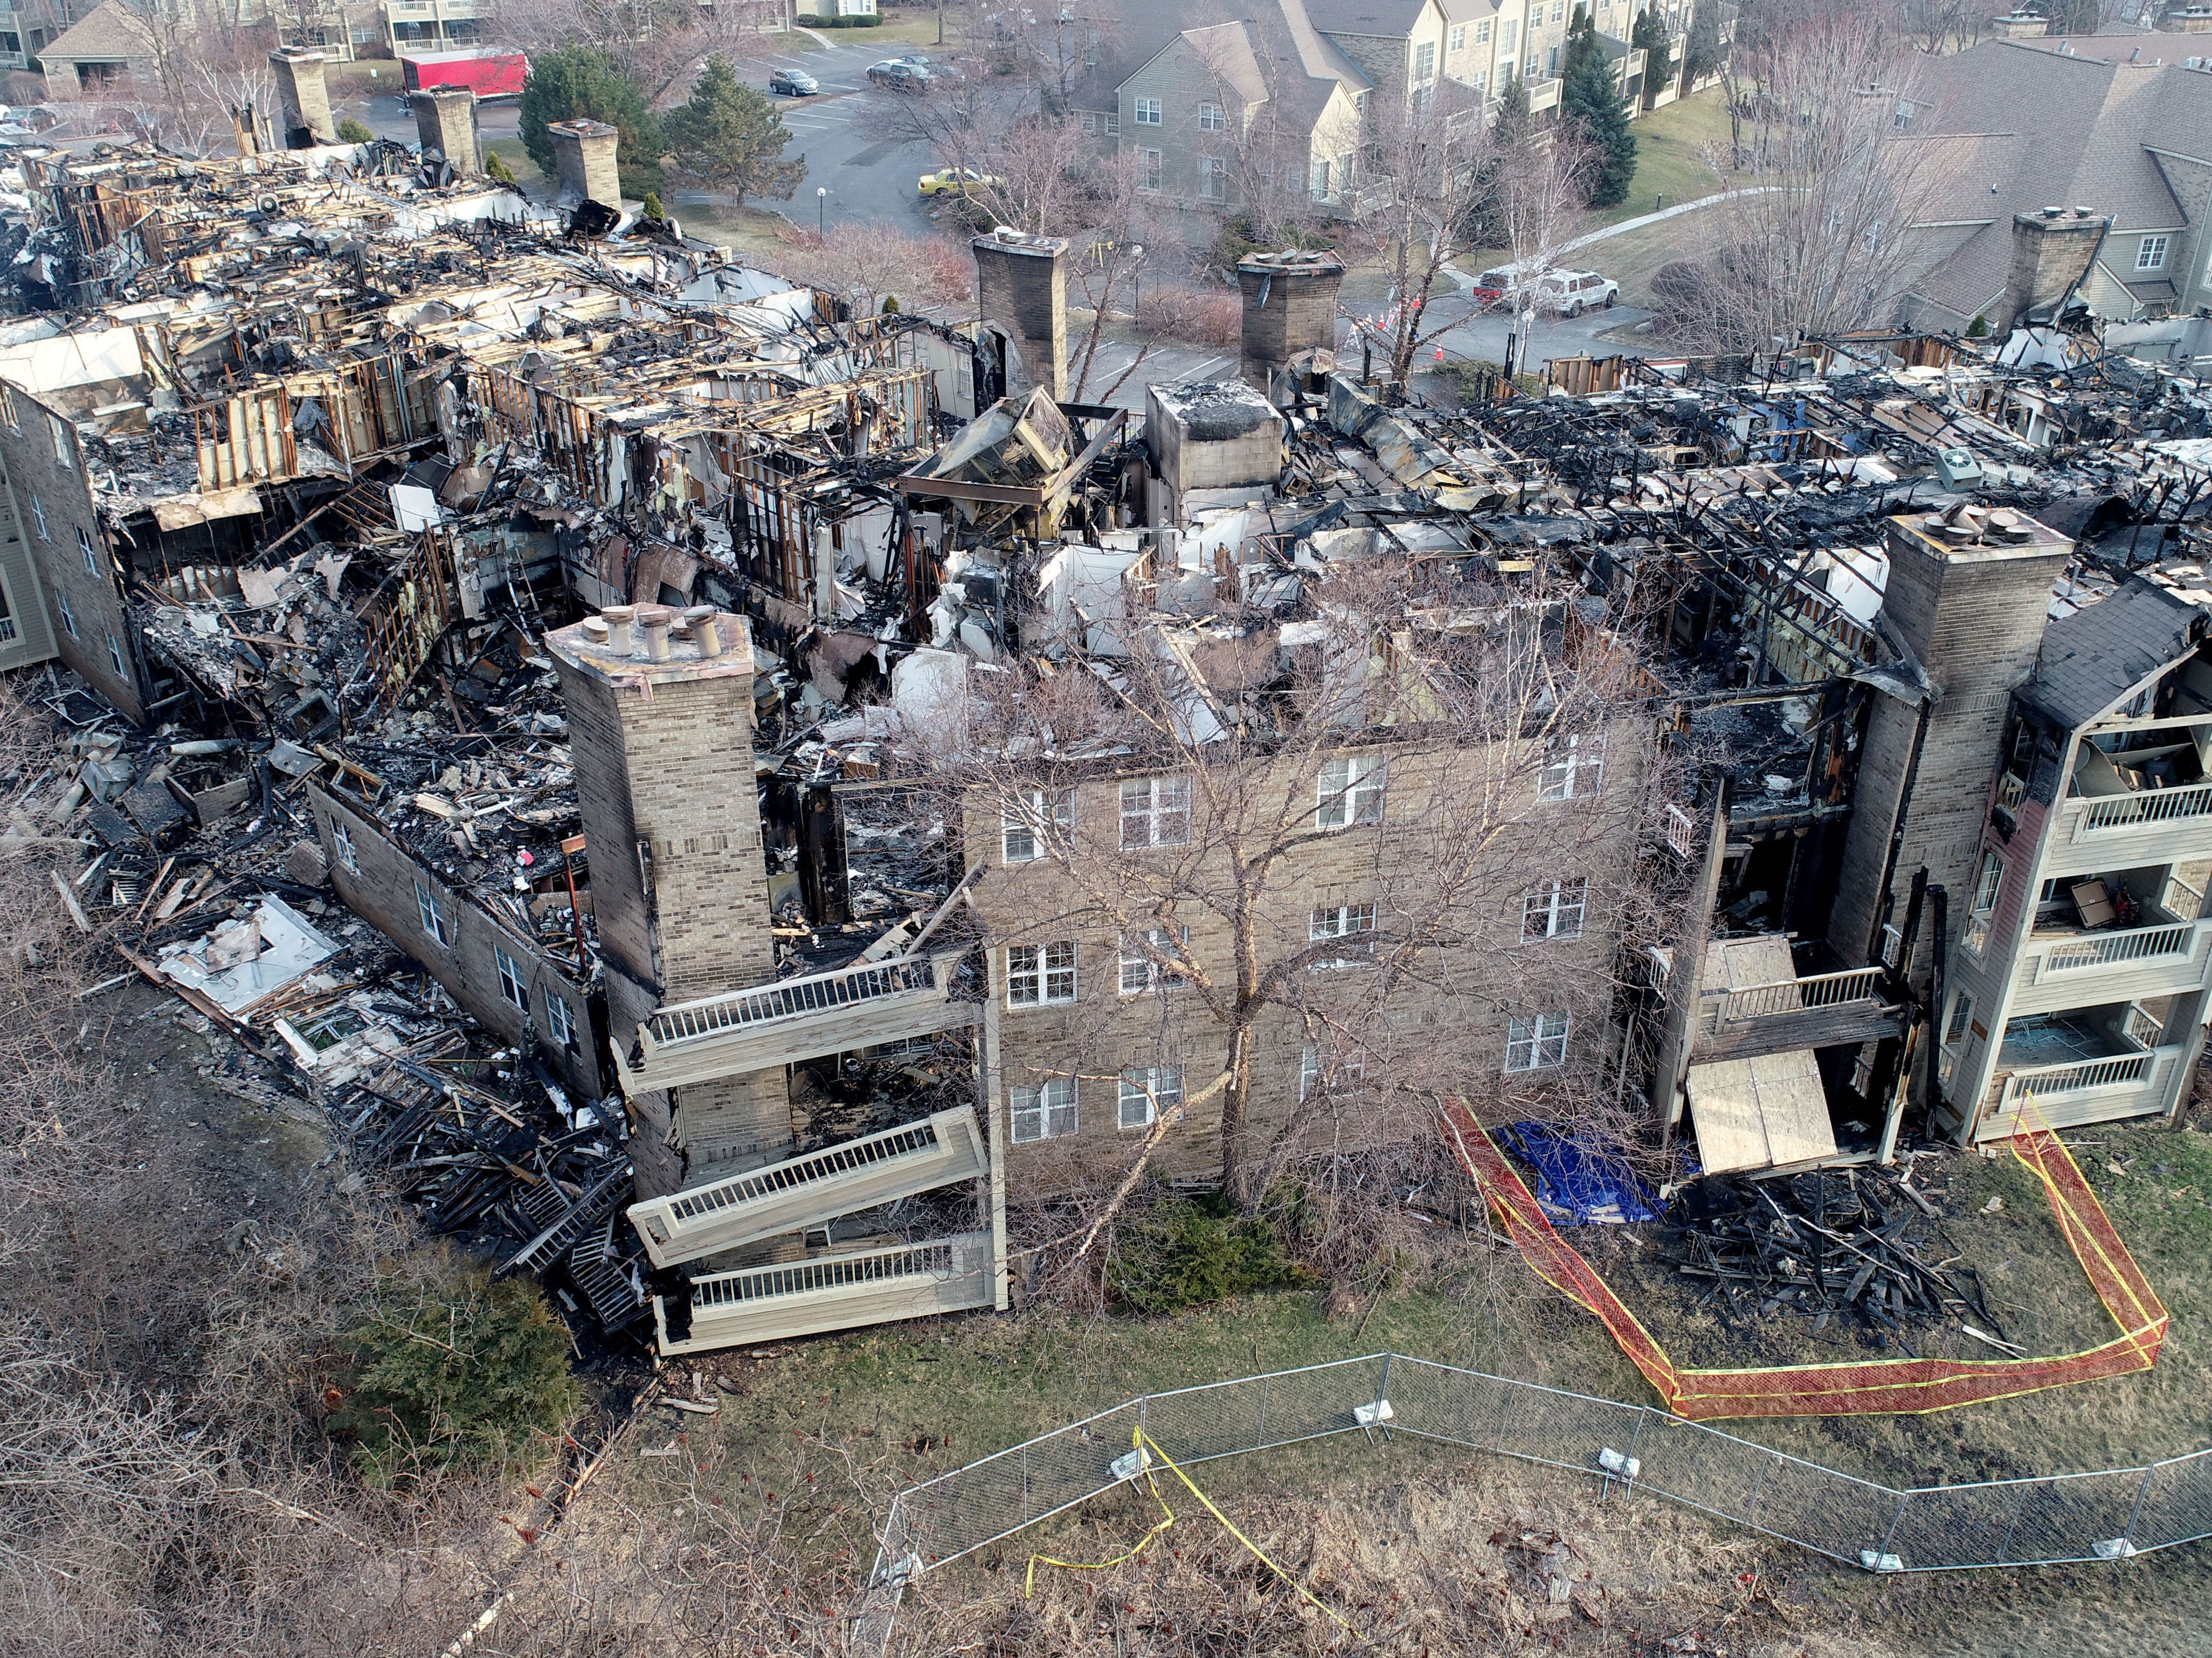 An aerial view from a drone shows the destruction after a fire at the White Oaks apartment complex, 9009 N. White Oak Lane in Tuesday, April 2, 2019, in Bayside.